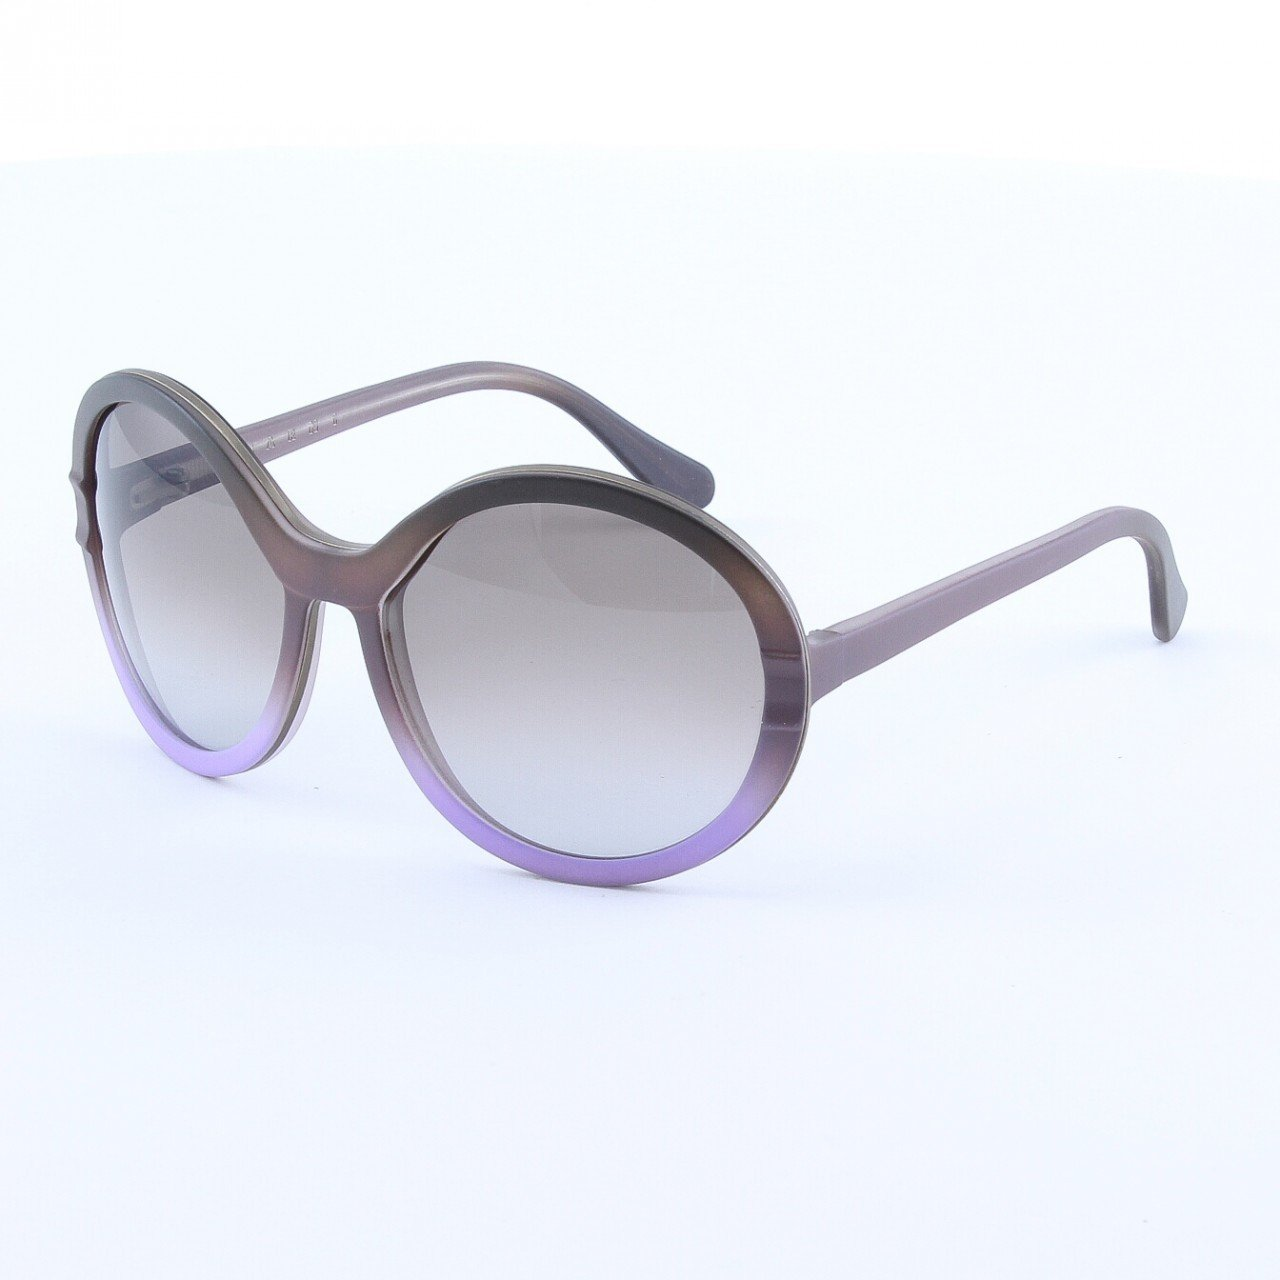 Marni MA145 Sunglasses Col. 03 Frosted Gray Lavendar w/ Decorative Accent with Gray Gradient Lenses